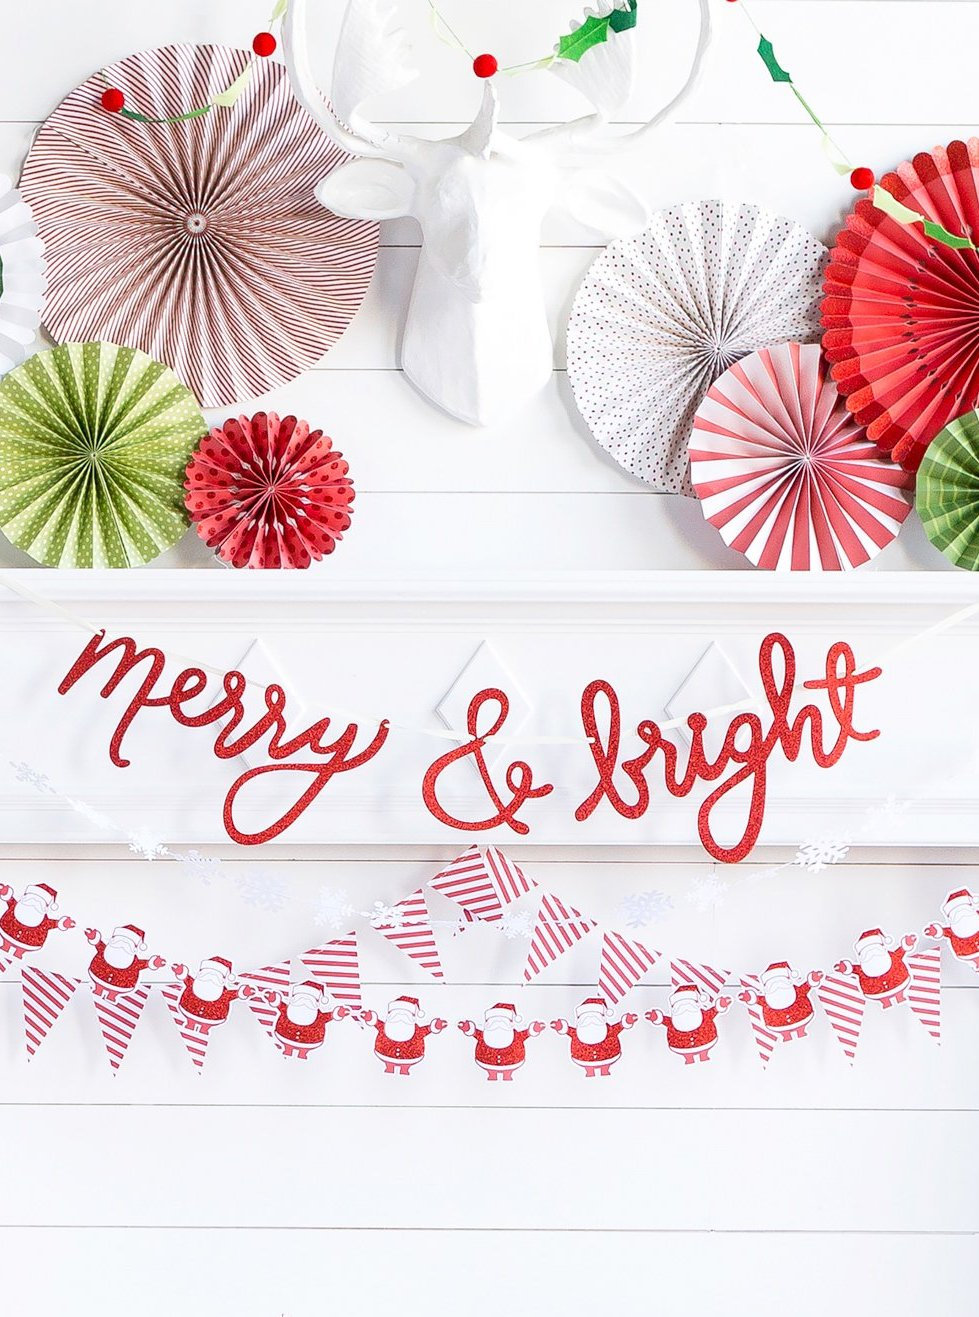 Merry & Bright Letter Banner